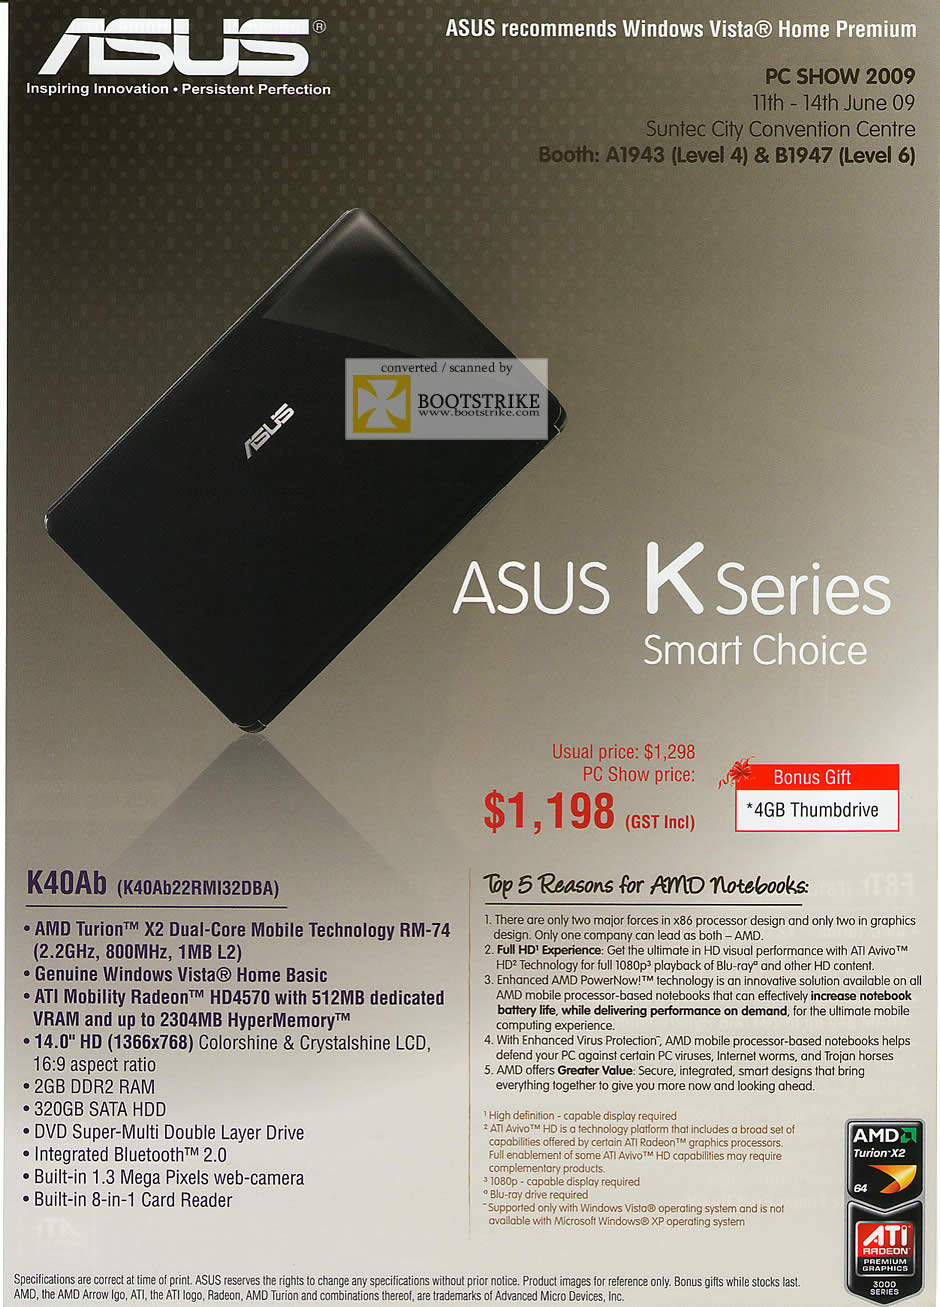 PC Show 2009 price list image brochure of ASUS K Series K40Ab AMD Notebook